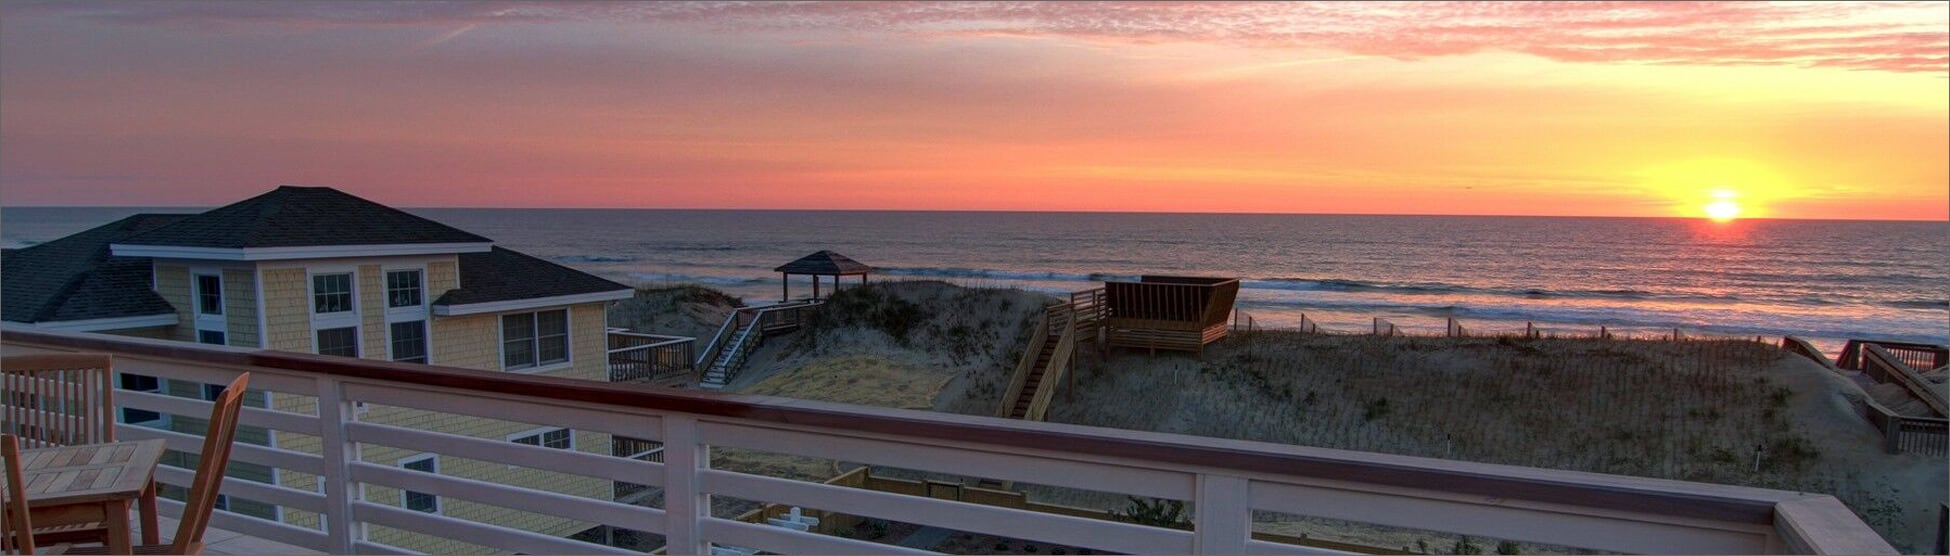 Astonishing Oceanfront Vacation Rental Homes Kees Outer Banks Nc Interior Design Ideas Grebswwsoteloinfo